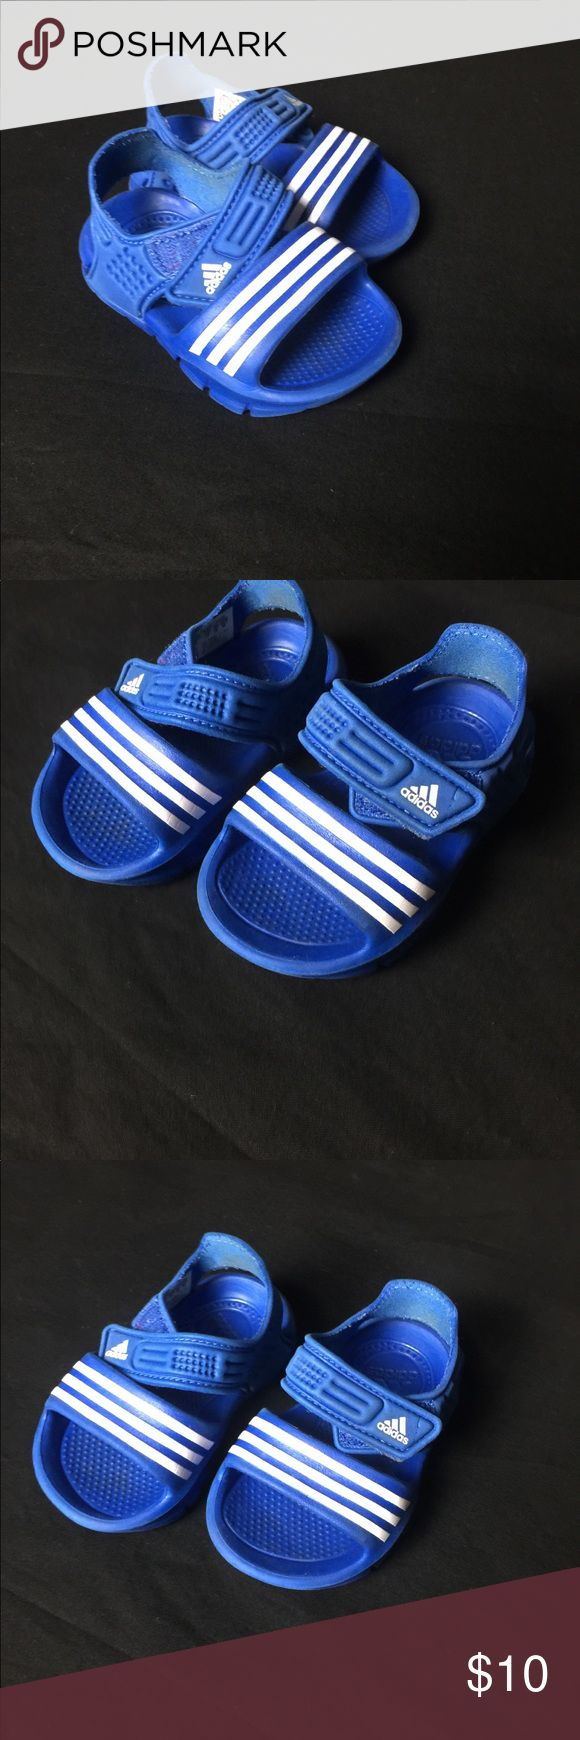 Toddler Boy Adidas Shoes Size 3 Good Condition  Toddler Boy Adidas Shoes Size 3 Good Condition   Shoes has been worn maybe 4 times but still looks super Good! adidas Shoes Sandals & Flip Flops